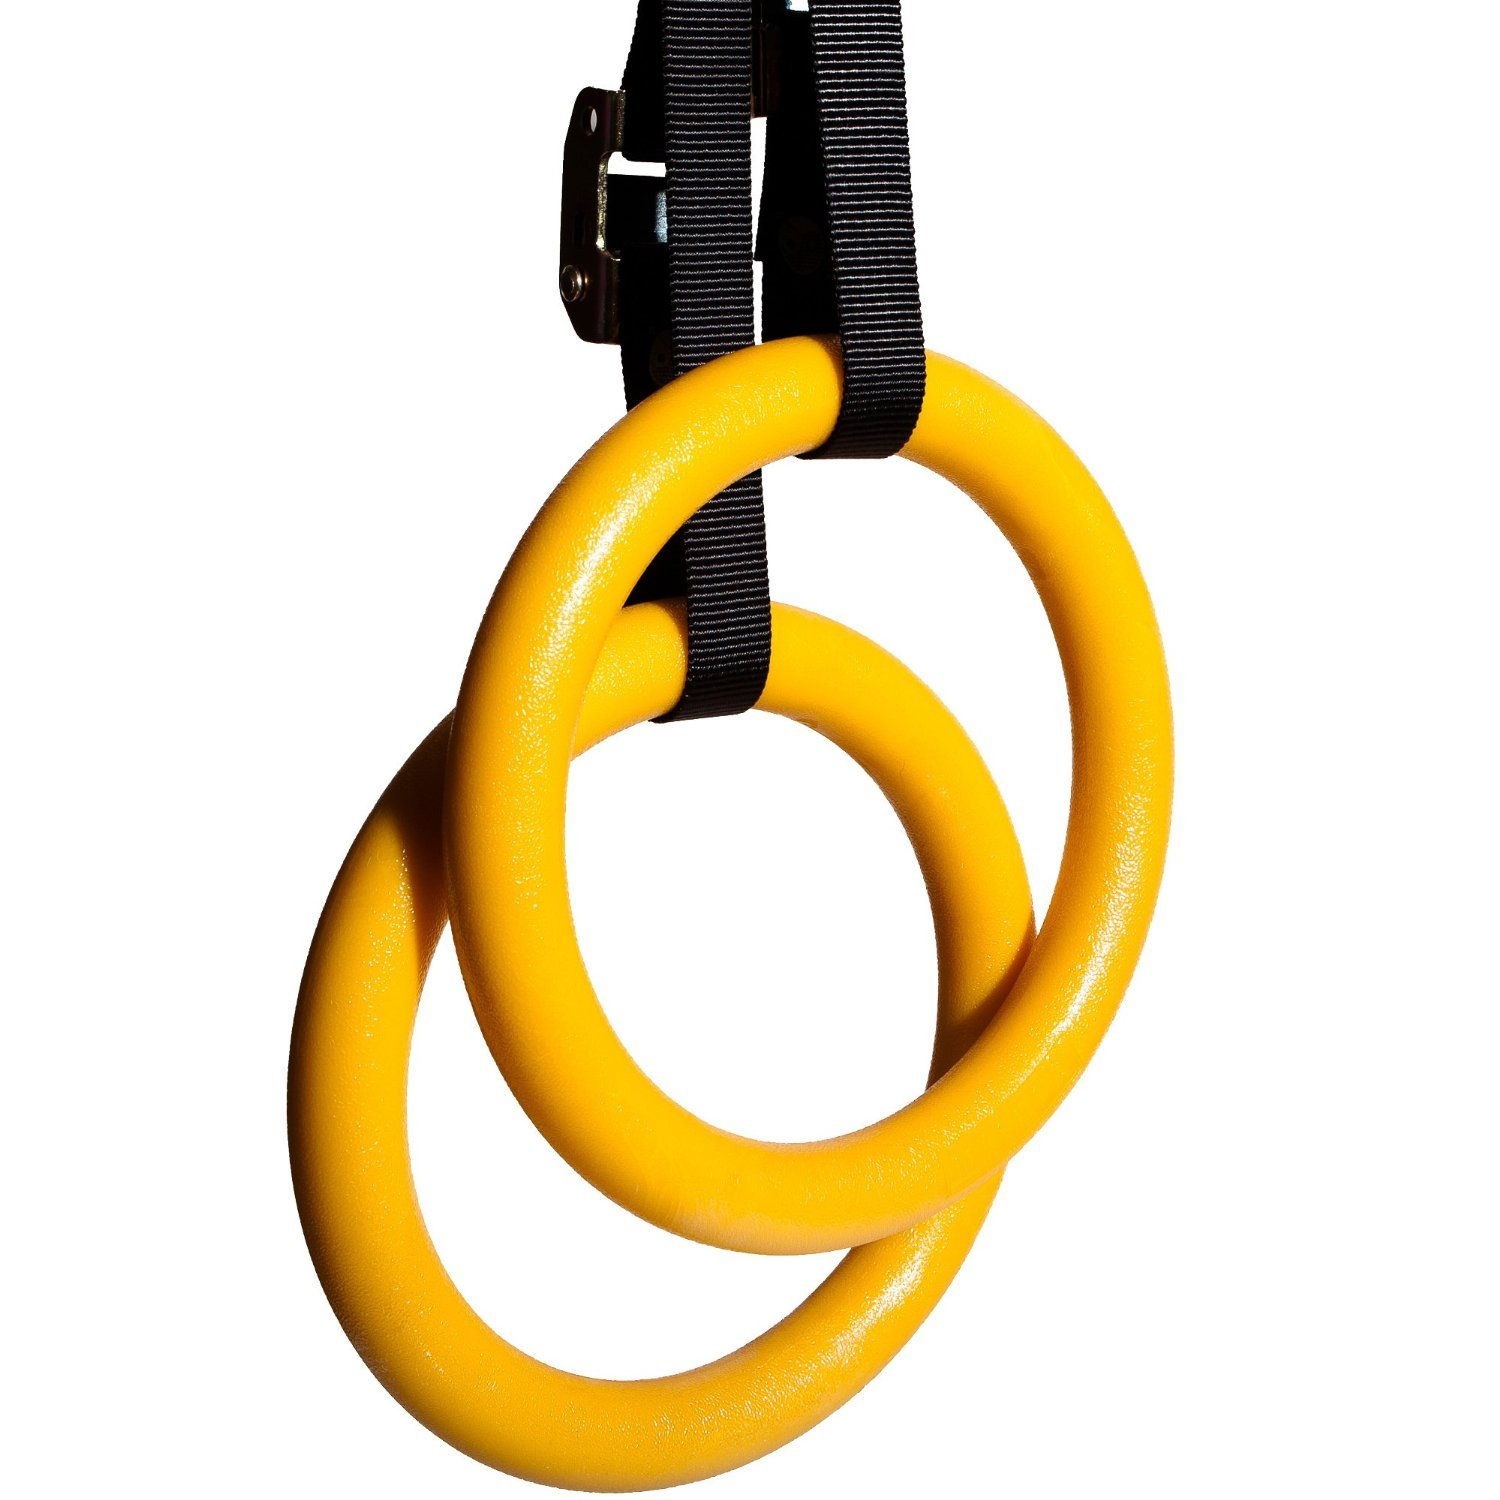 Synergee 9.25 Diameter Wood Olympic Gymnastics Rings with Adjustable Straps for Crossfit Pull Up Dips Muscle Ups